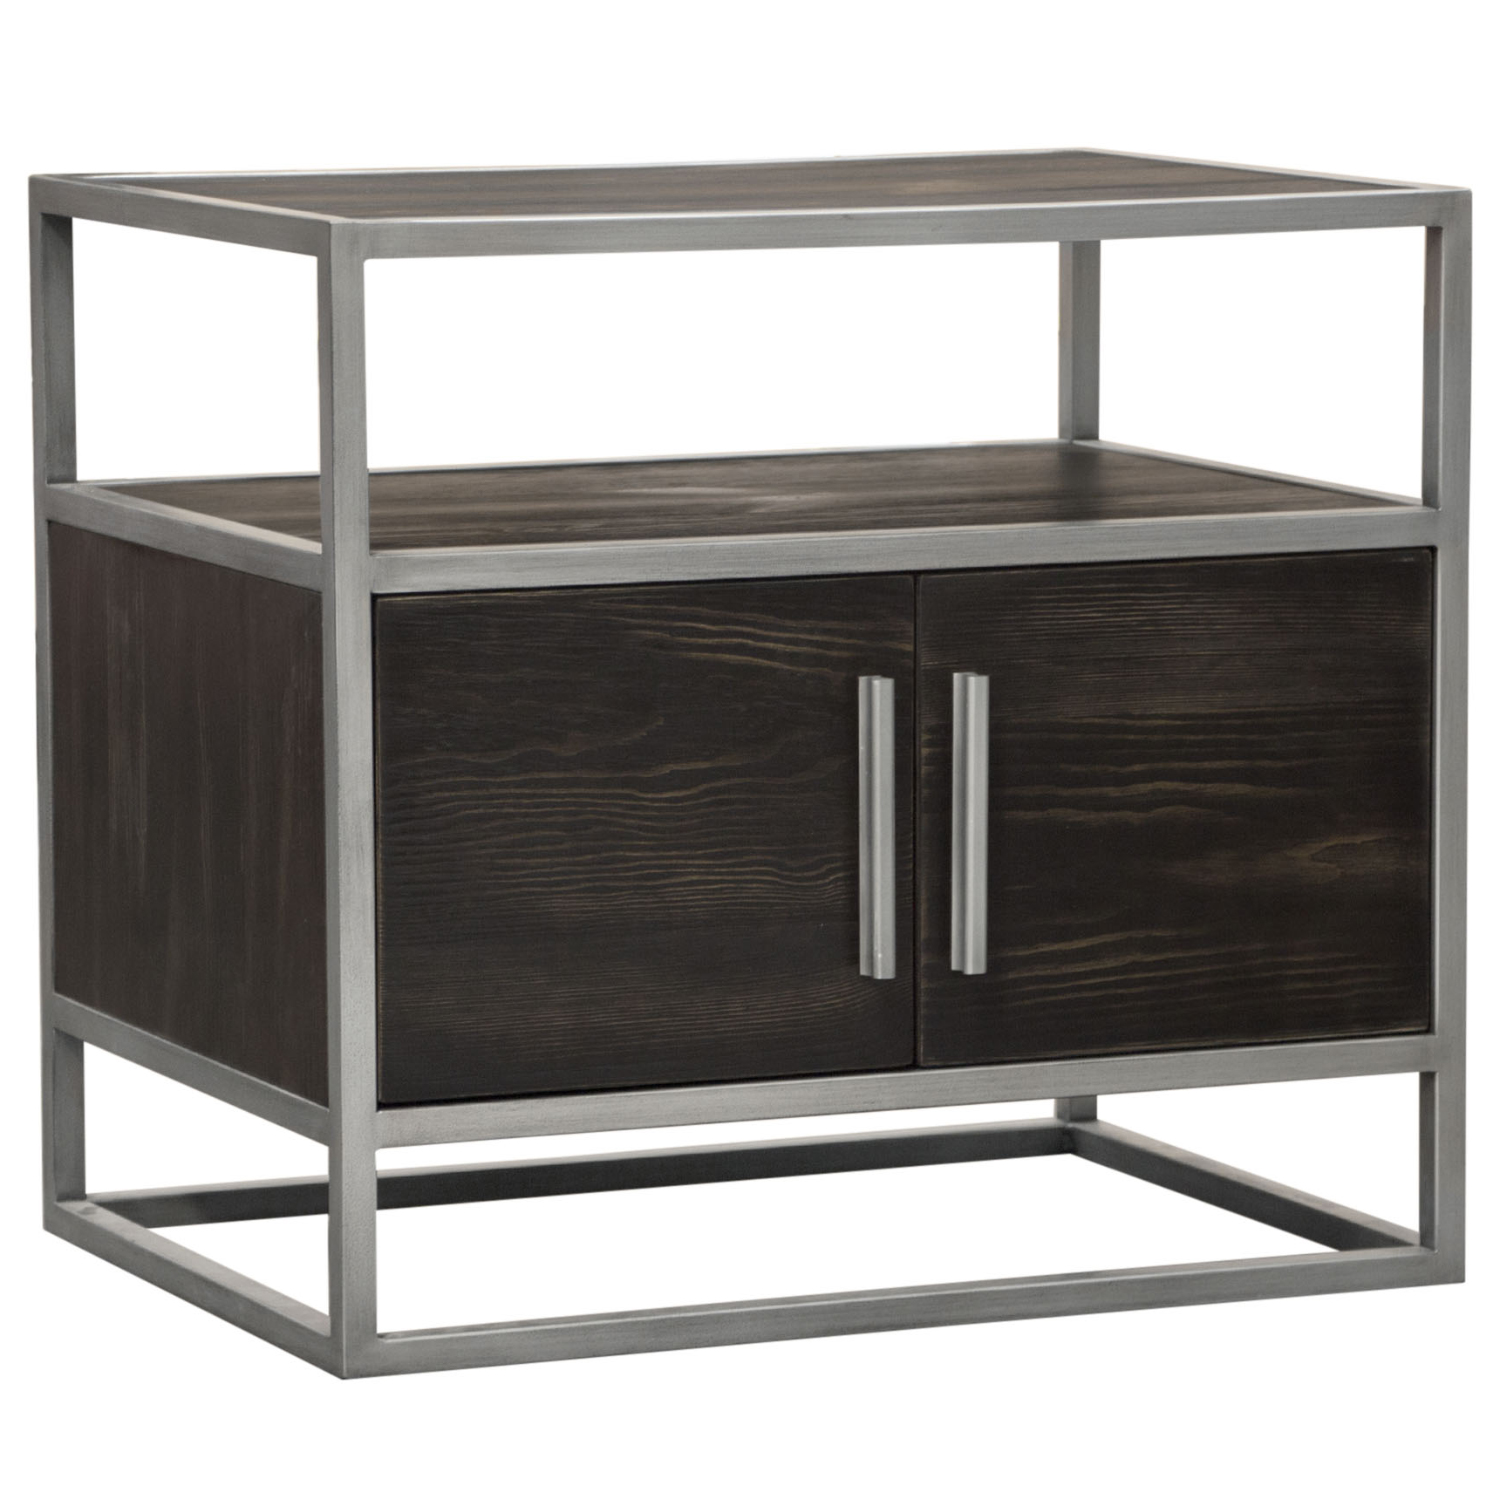 Empire End Table In Weathered Brown Veneer Brushed Silver Metal By Diamond Sofa